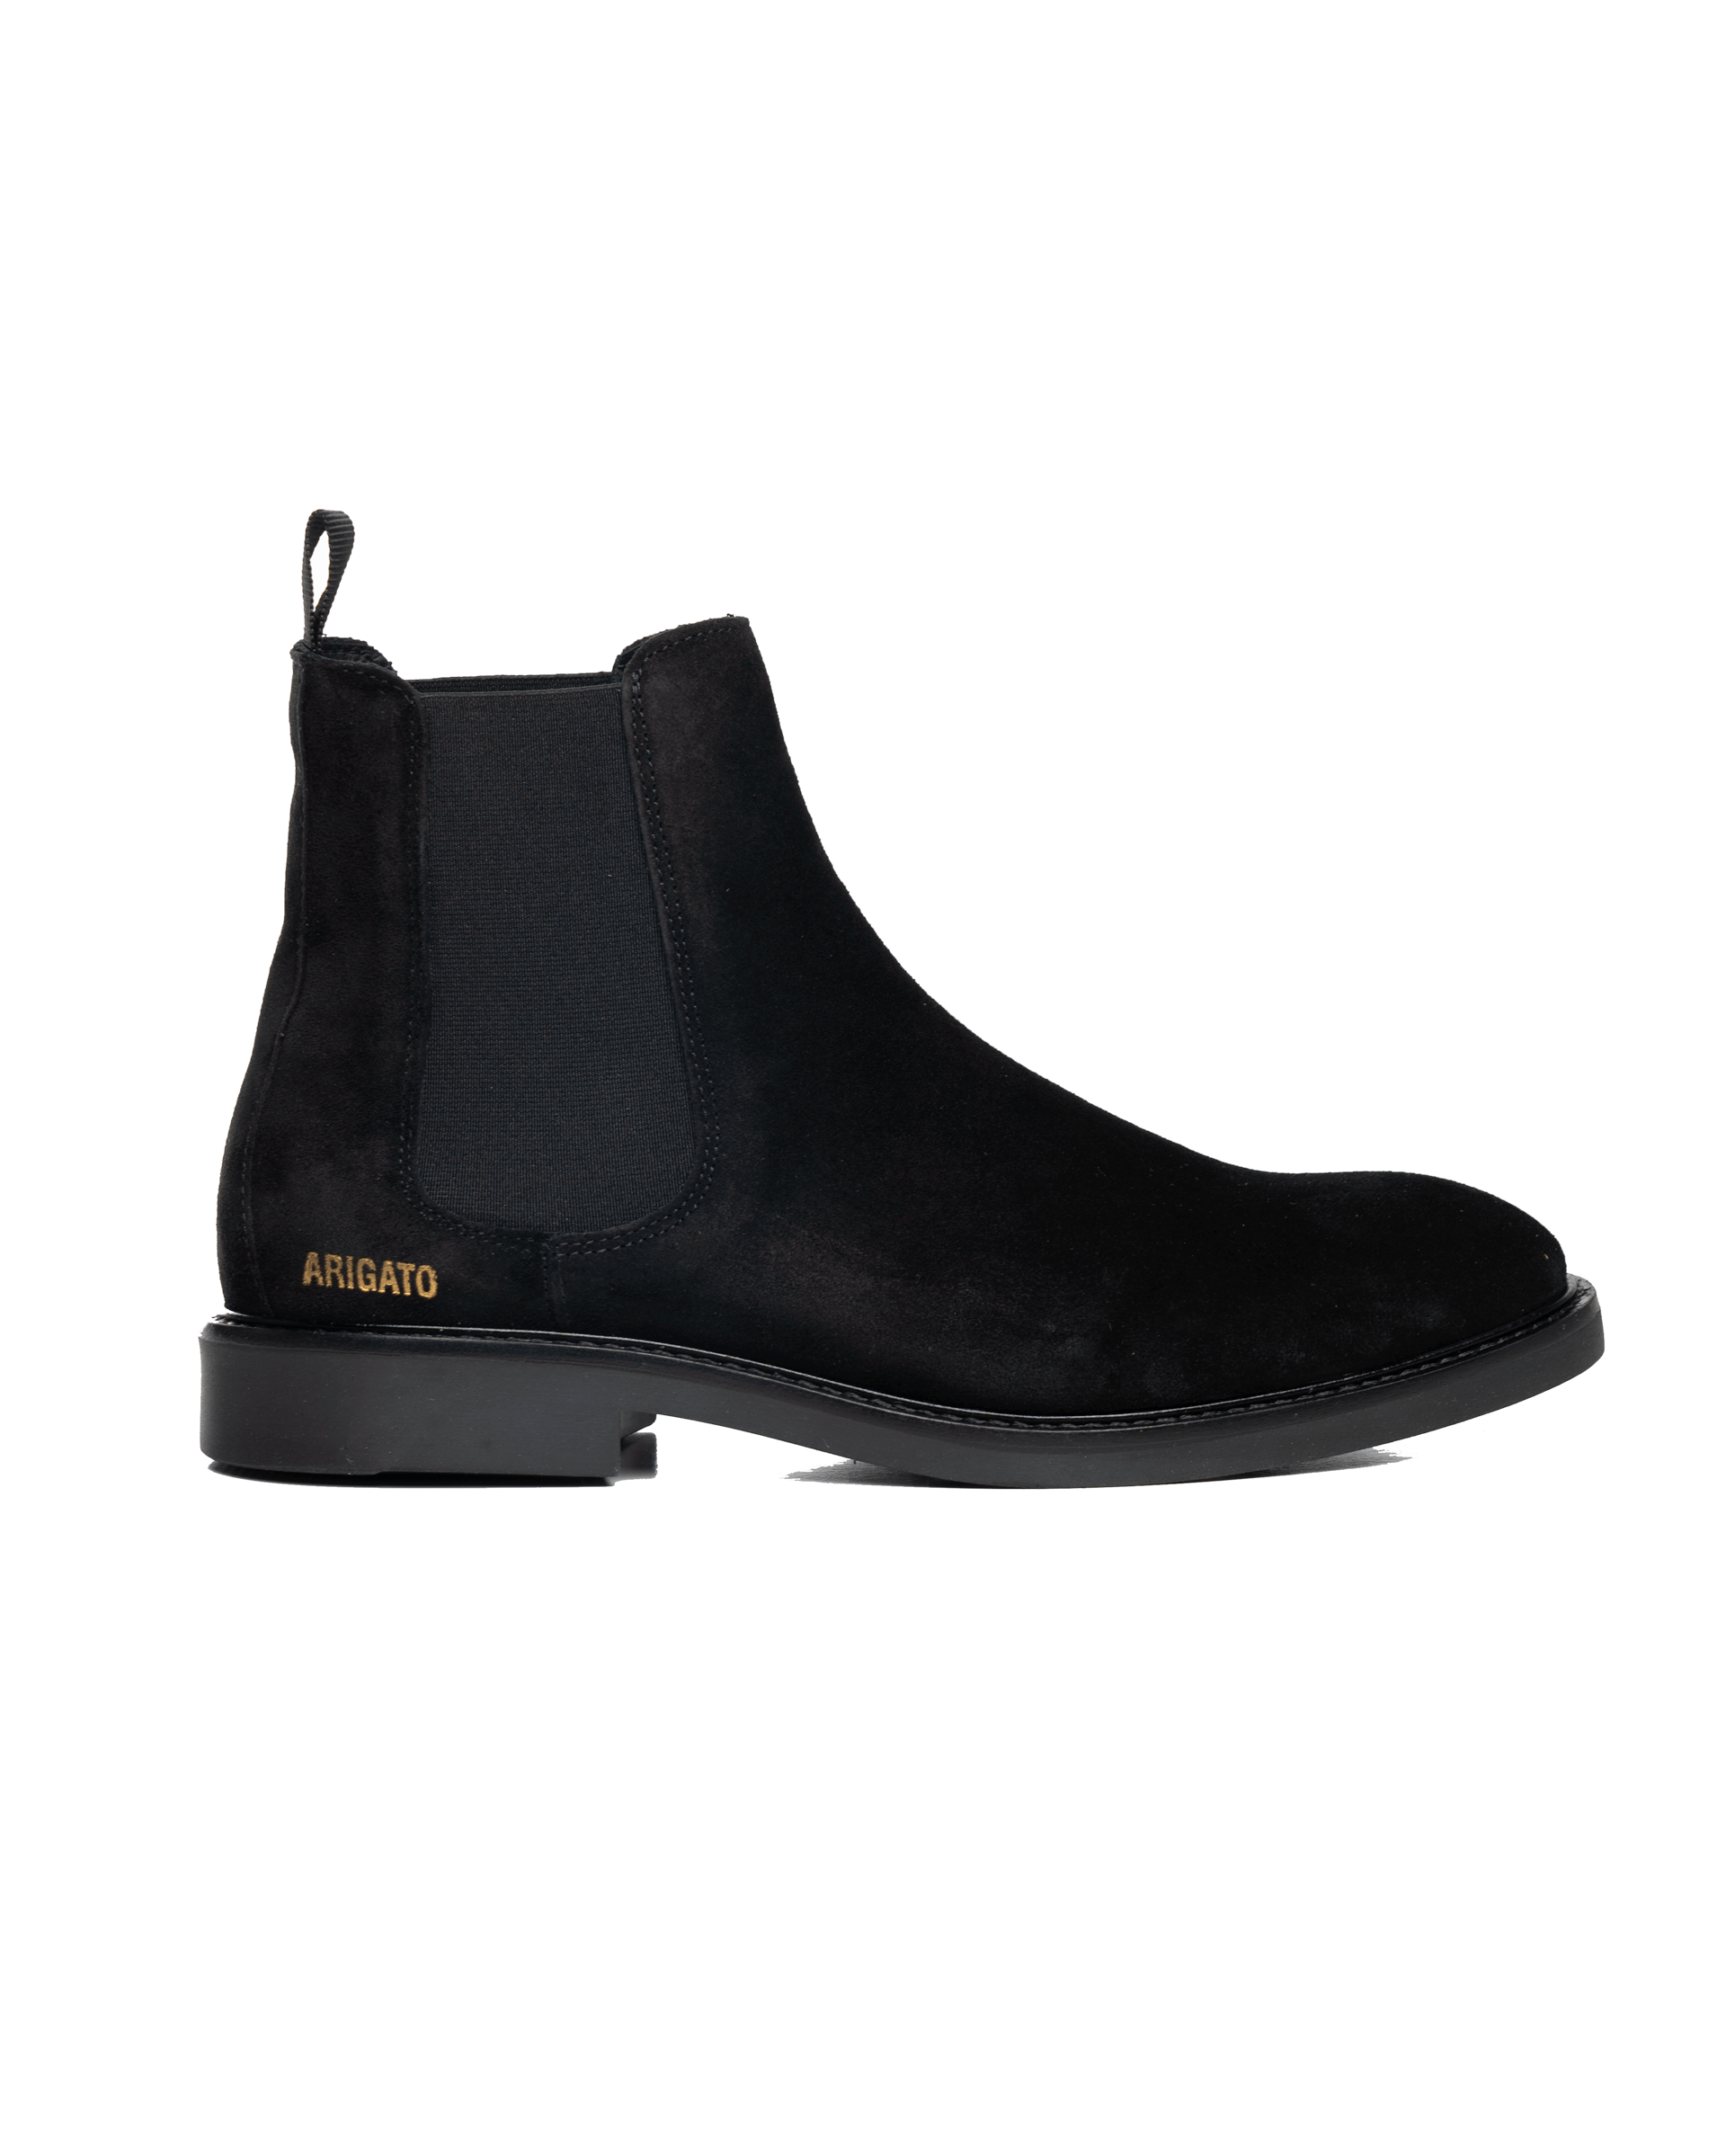 Axel Arigato Chelsea Boots Suede Black